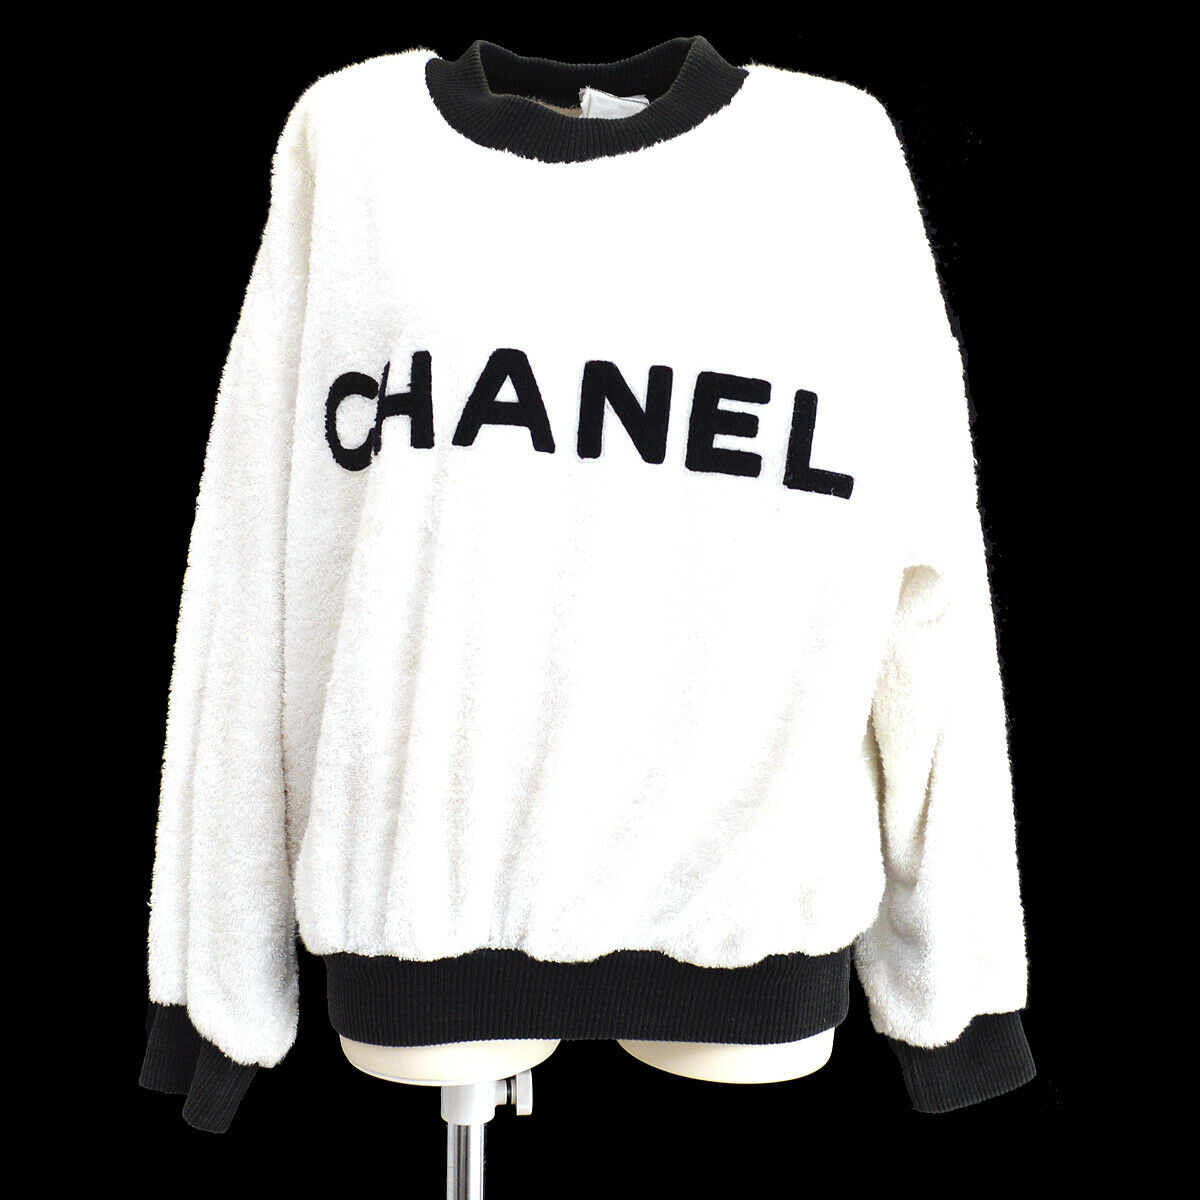 Round Neck CC Long Sleeve Tops Sweatshirt by Chanel, available on ebay.com for $2232 Hailey Baldwin Top Exact Product